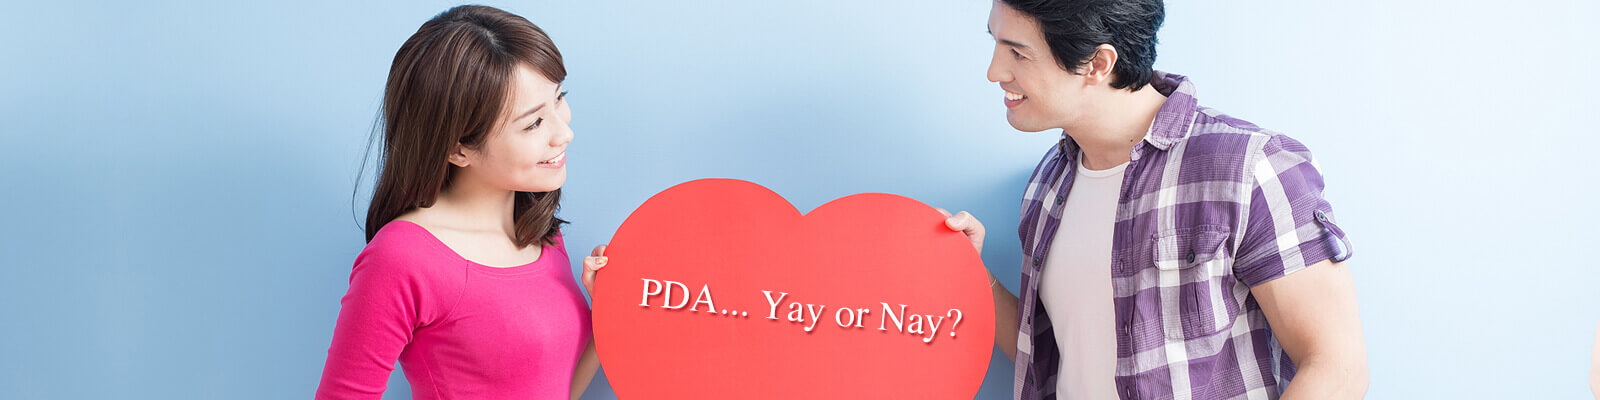 PDA... Yay or Nay?